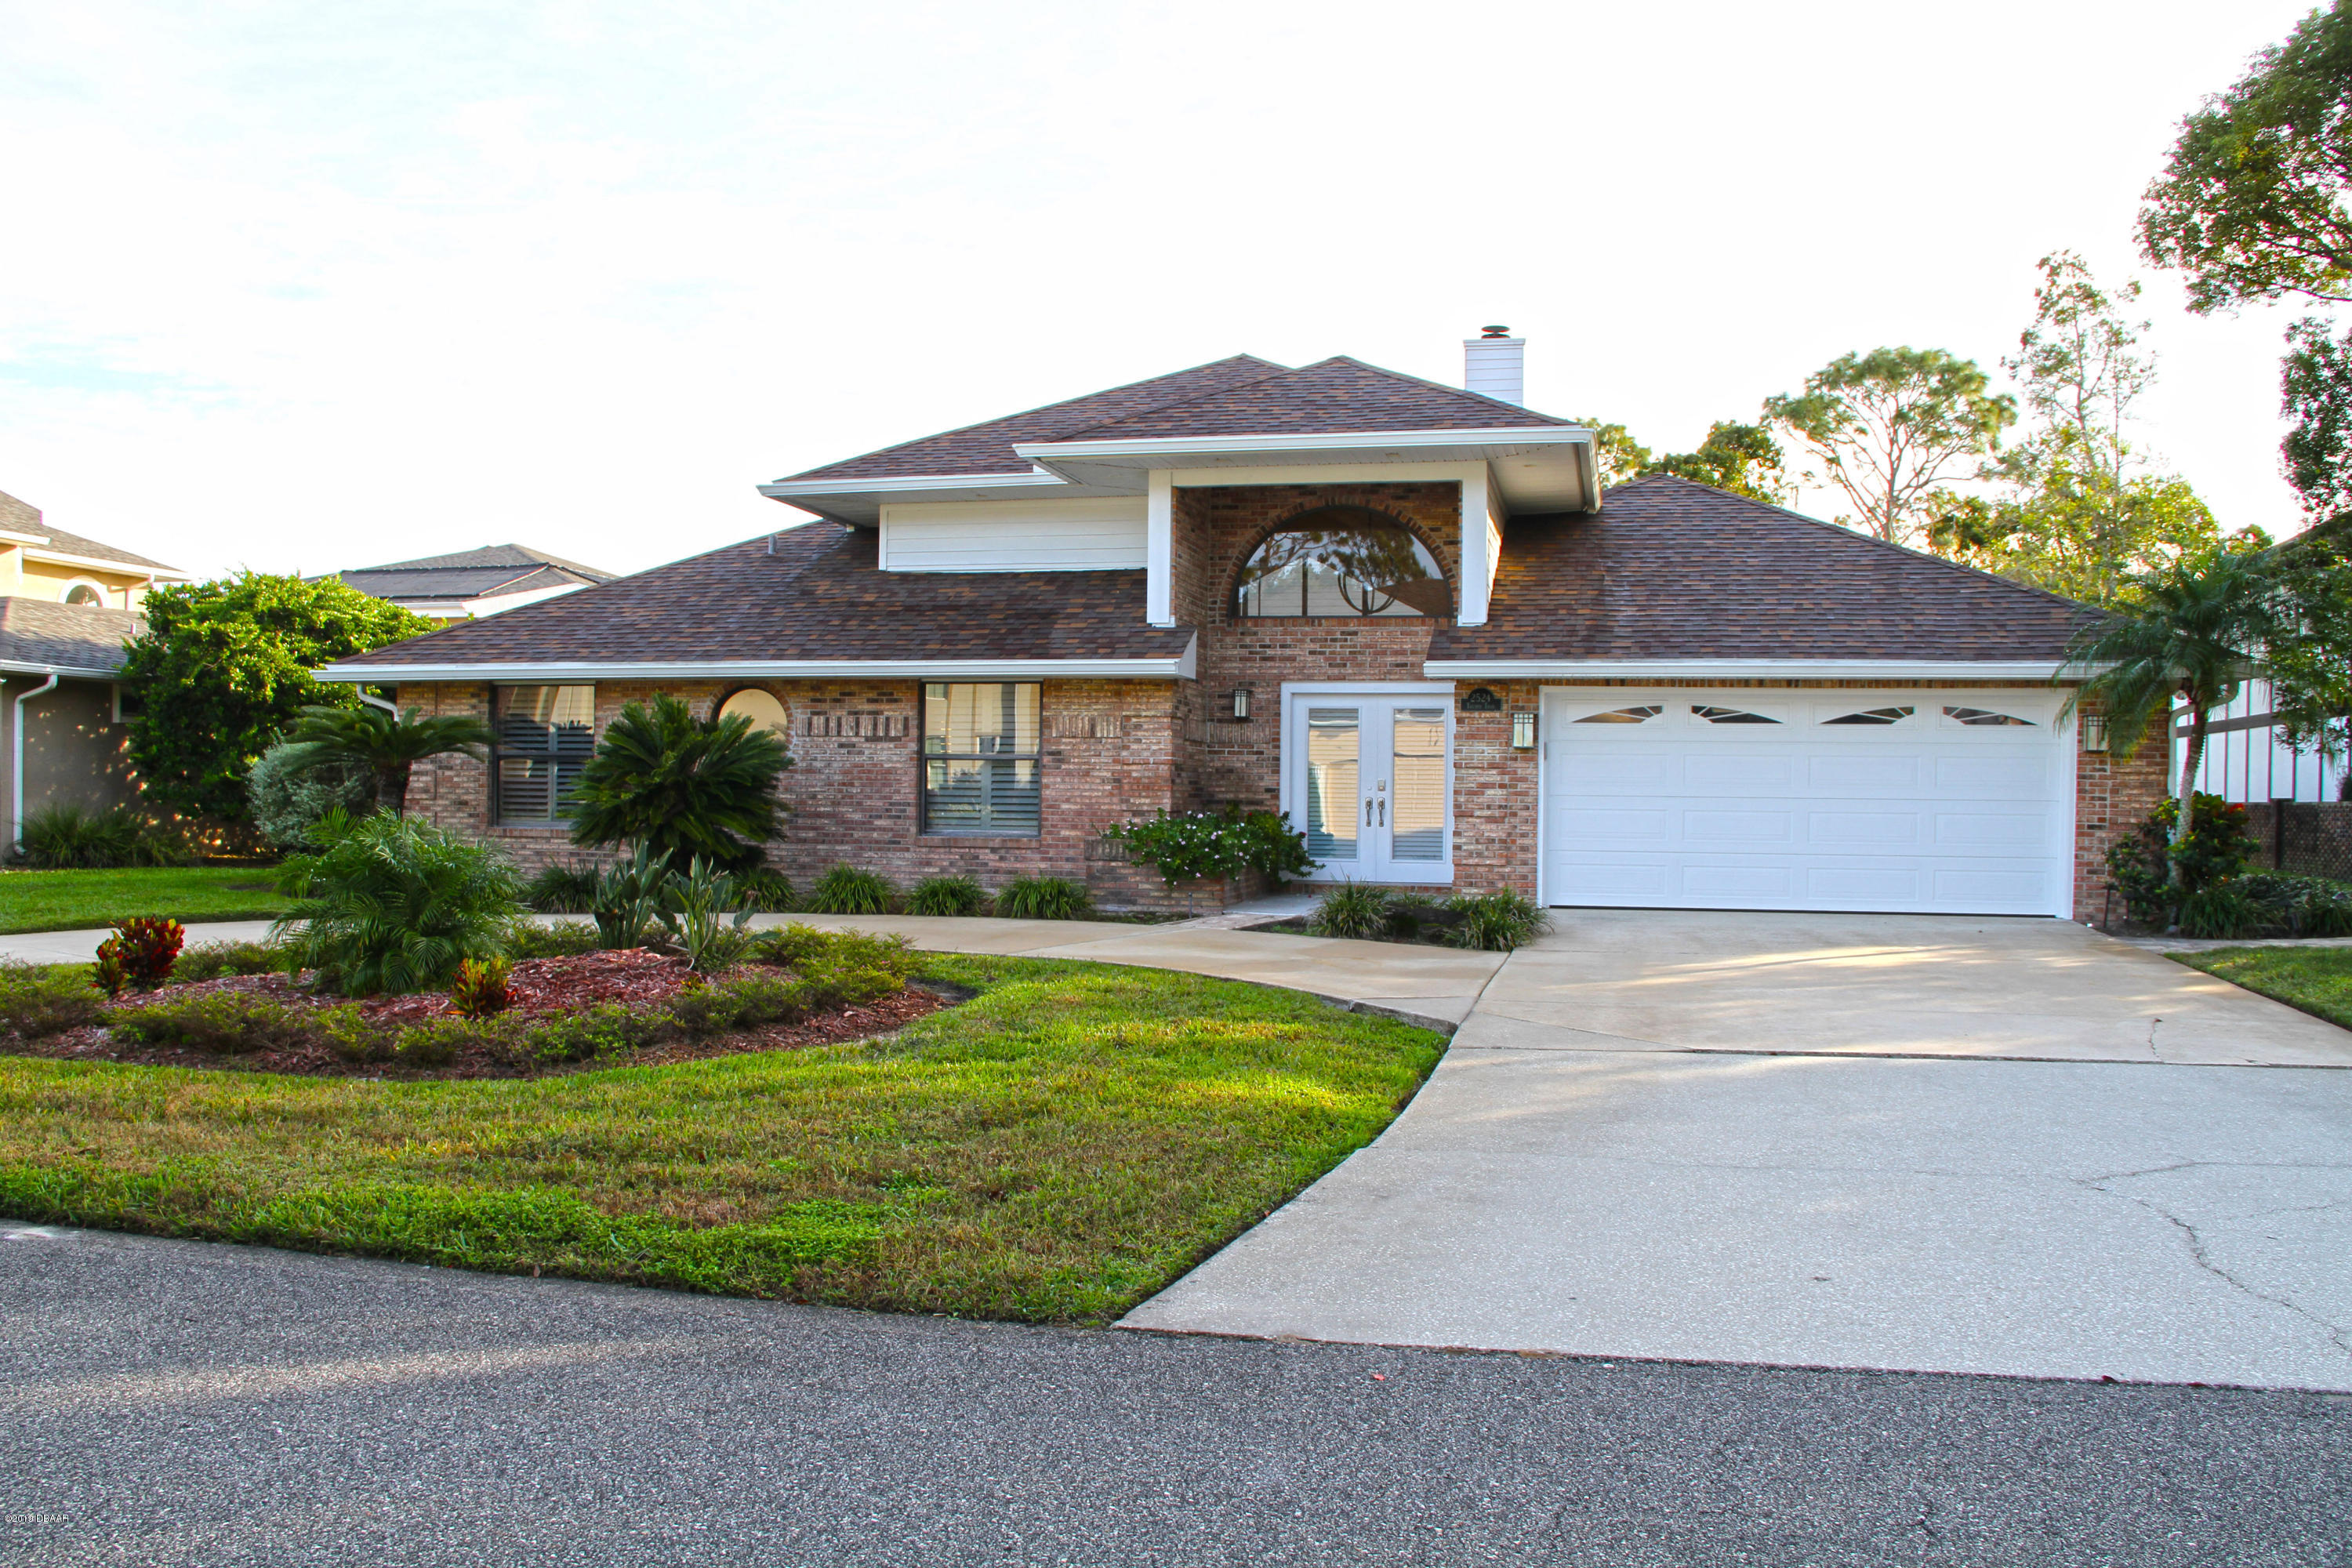 Photo of 2524 Tail Spin Trail, Port Orange, FL 32128